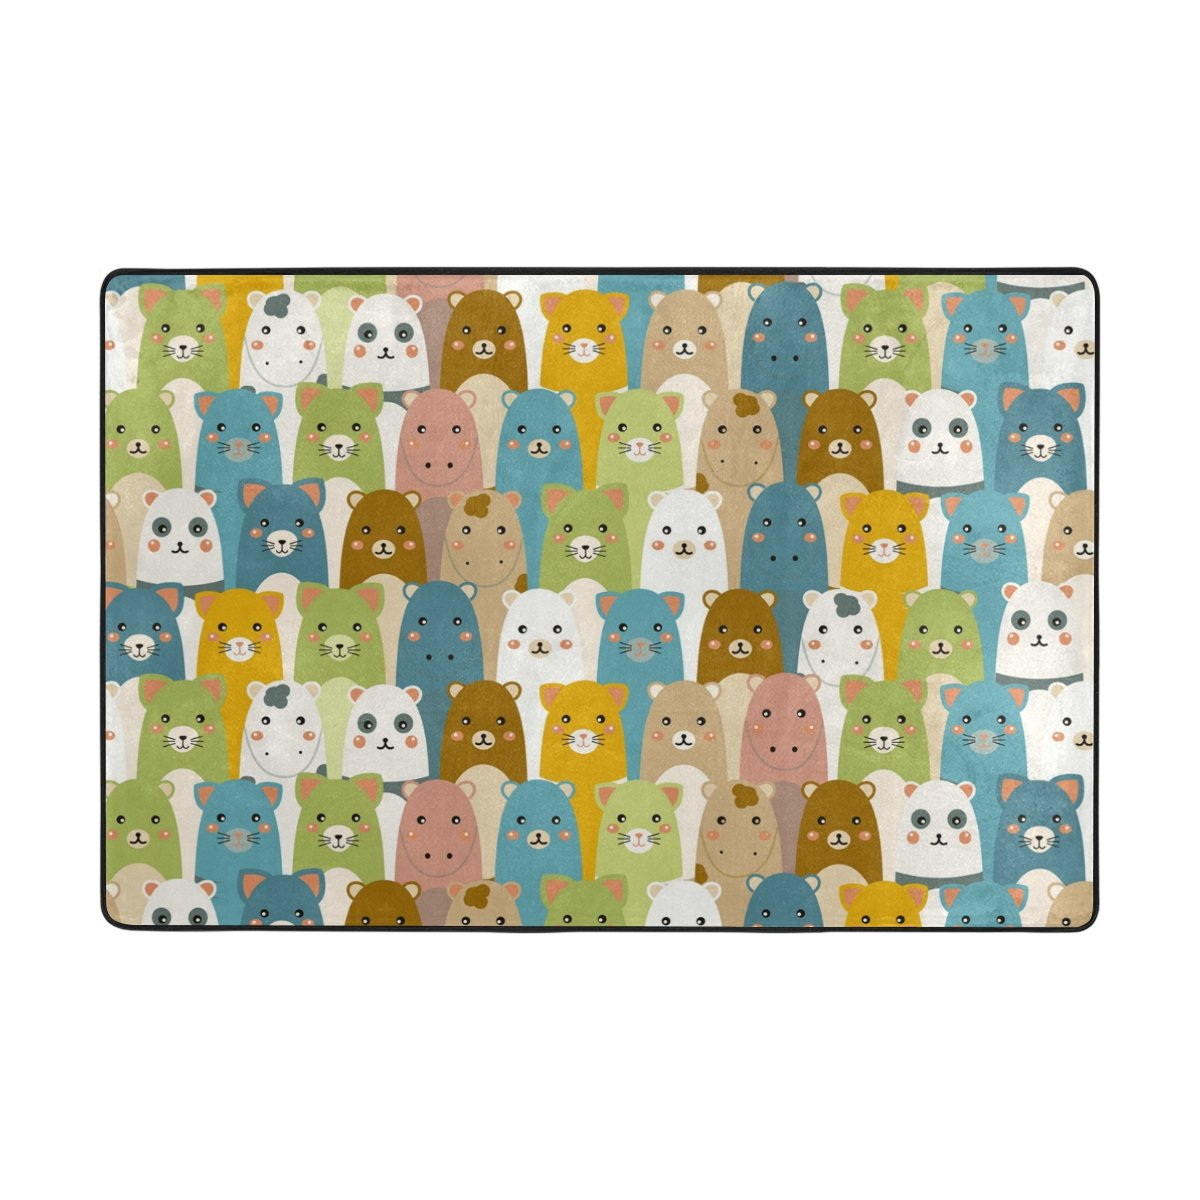 Top Carpenter Cute Animals Doodle Art Area Rug Pad - 72 x 48 inch - 100% Light Weight Polyester Fabric for Living - Bedroom